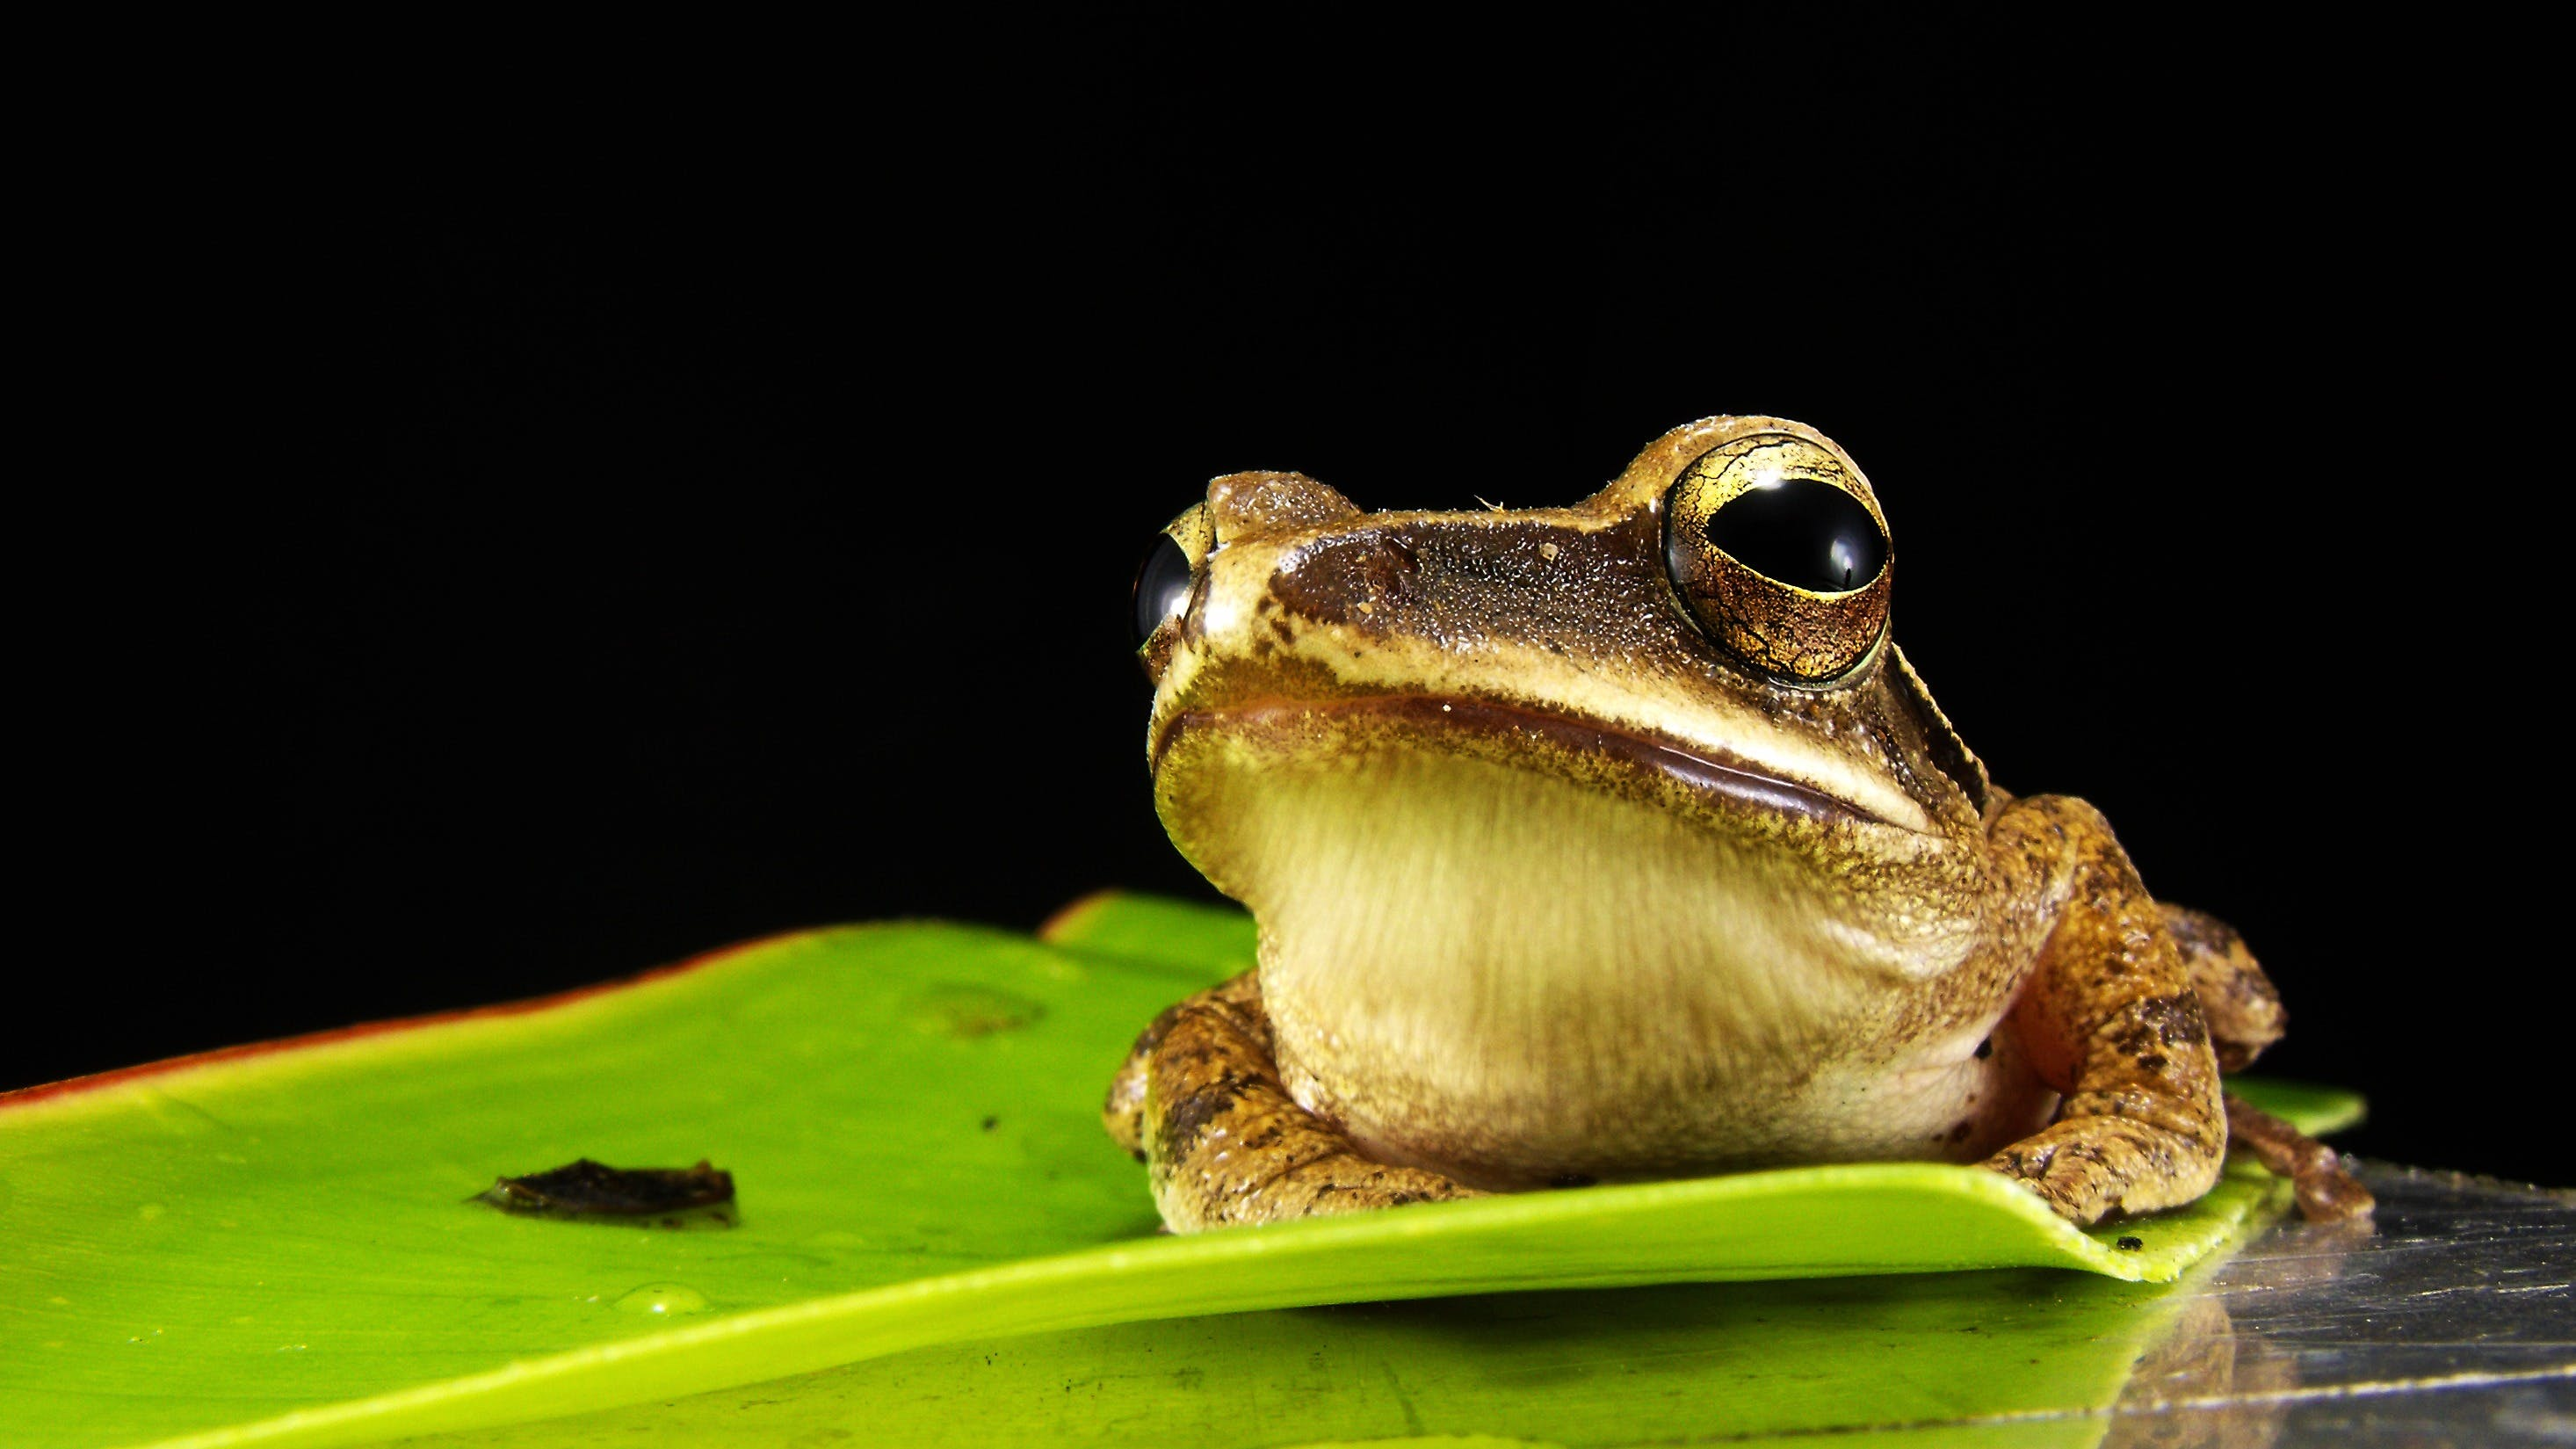 Brown and Gray Frog on Green Leaf